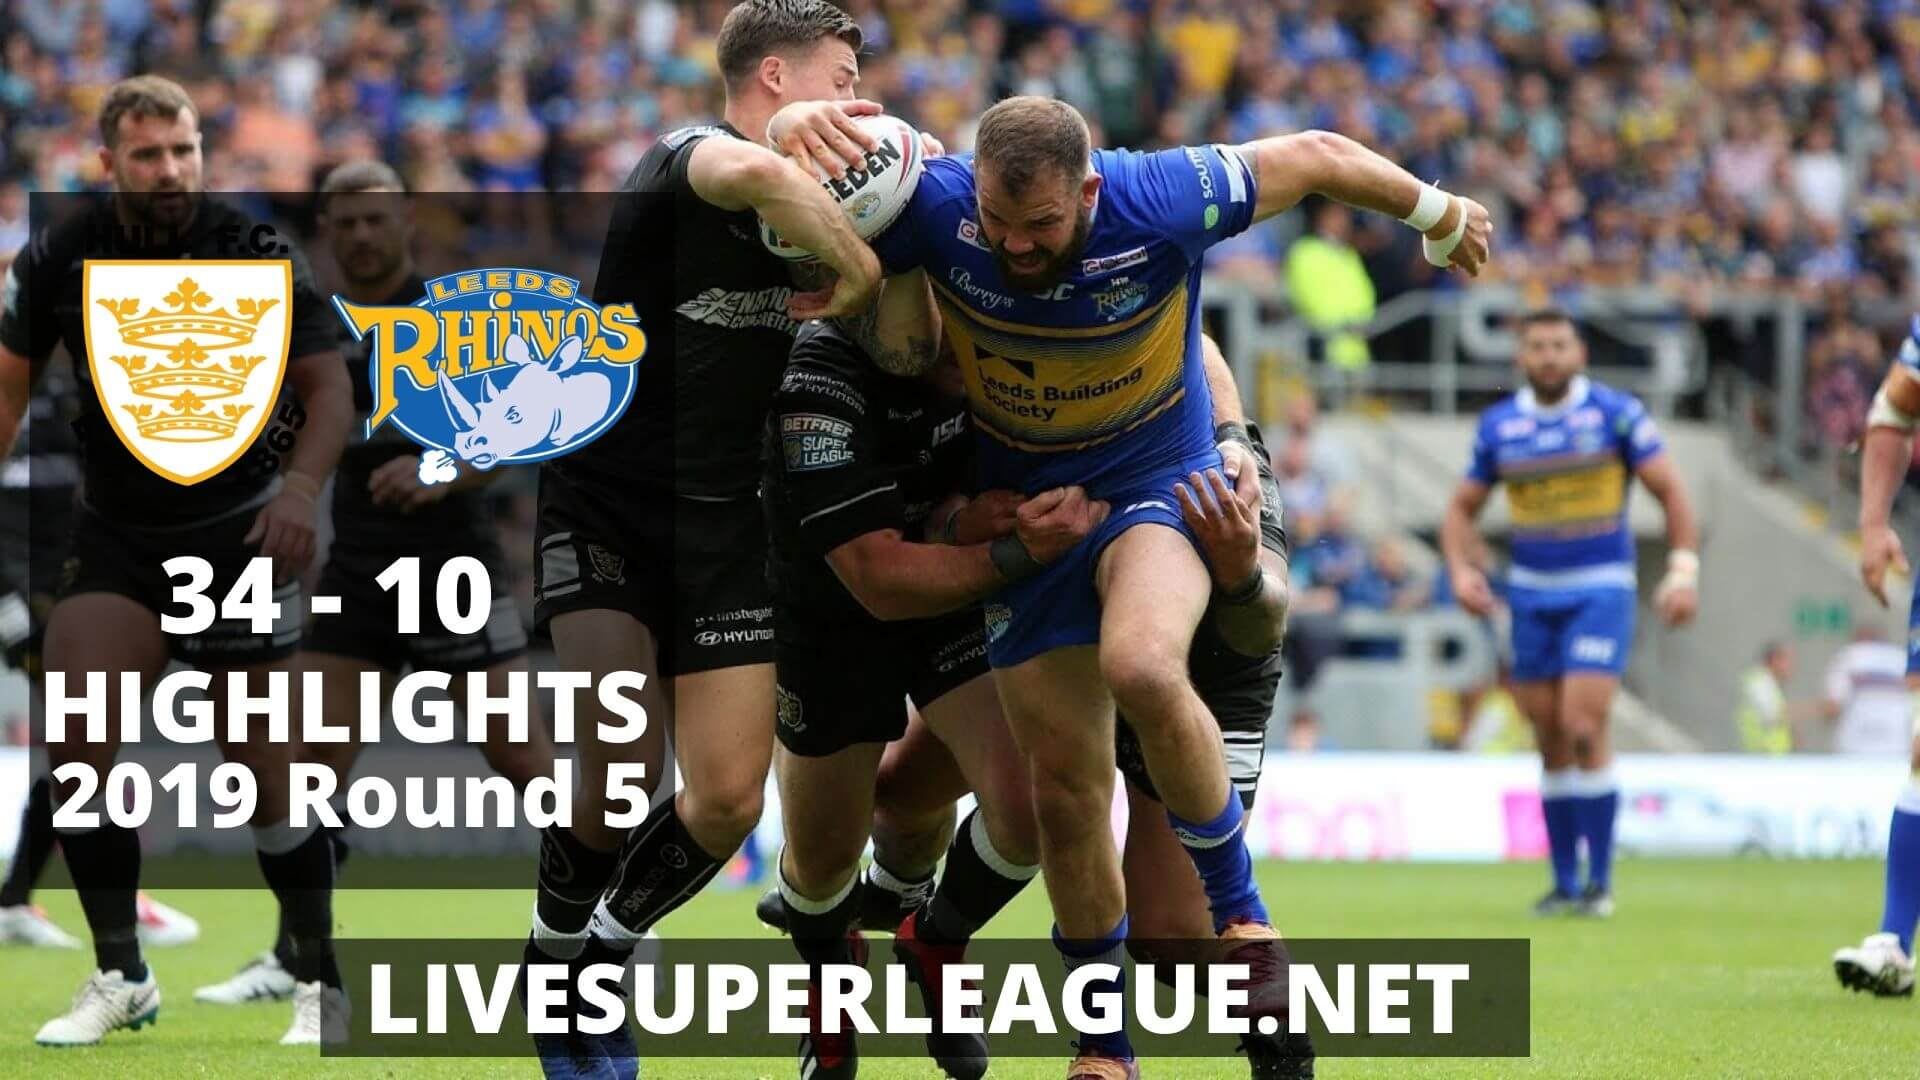 Hull FC Vs Leeds Rhinos Highlights 2019 Round 5